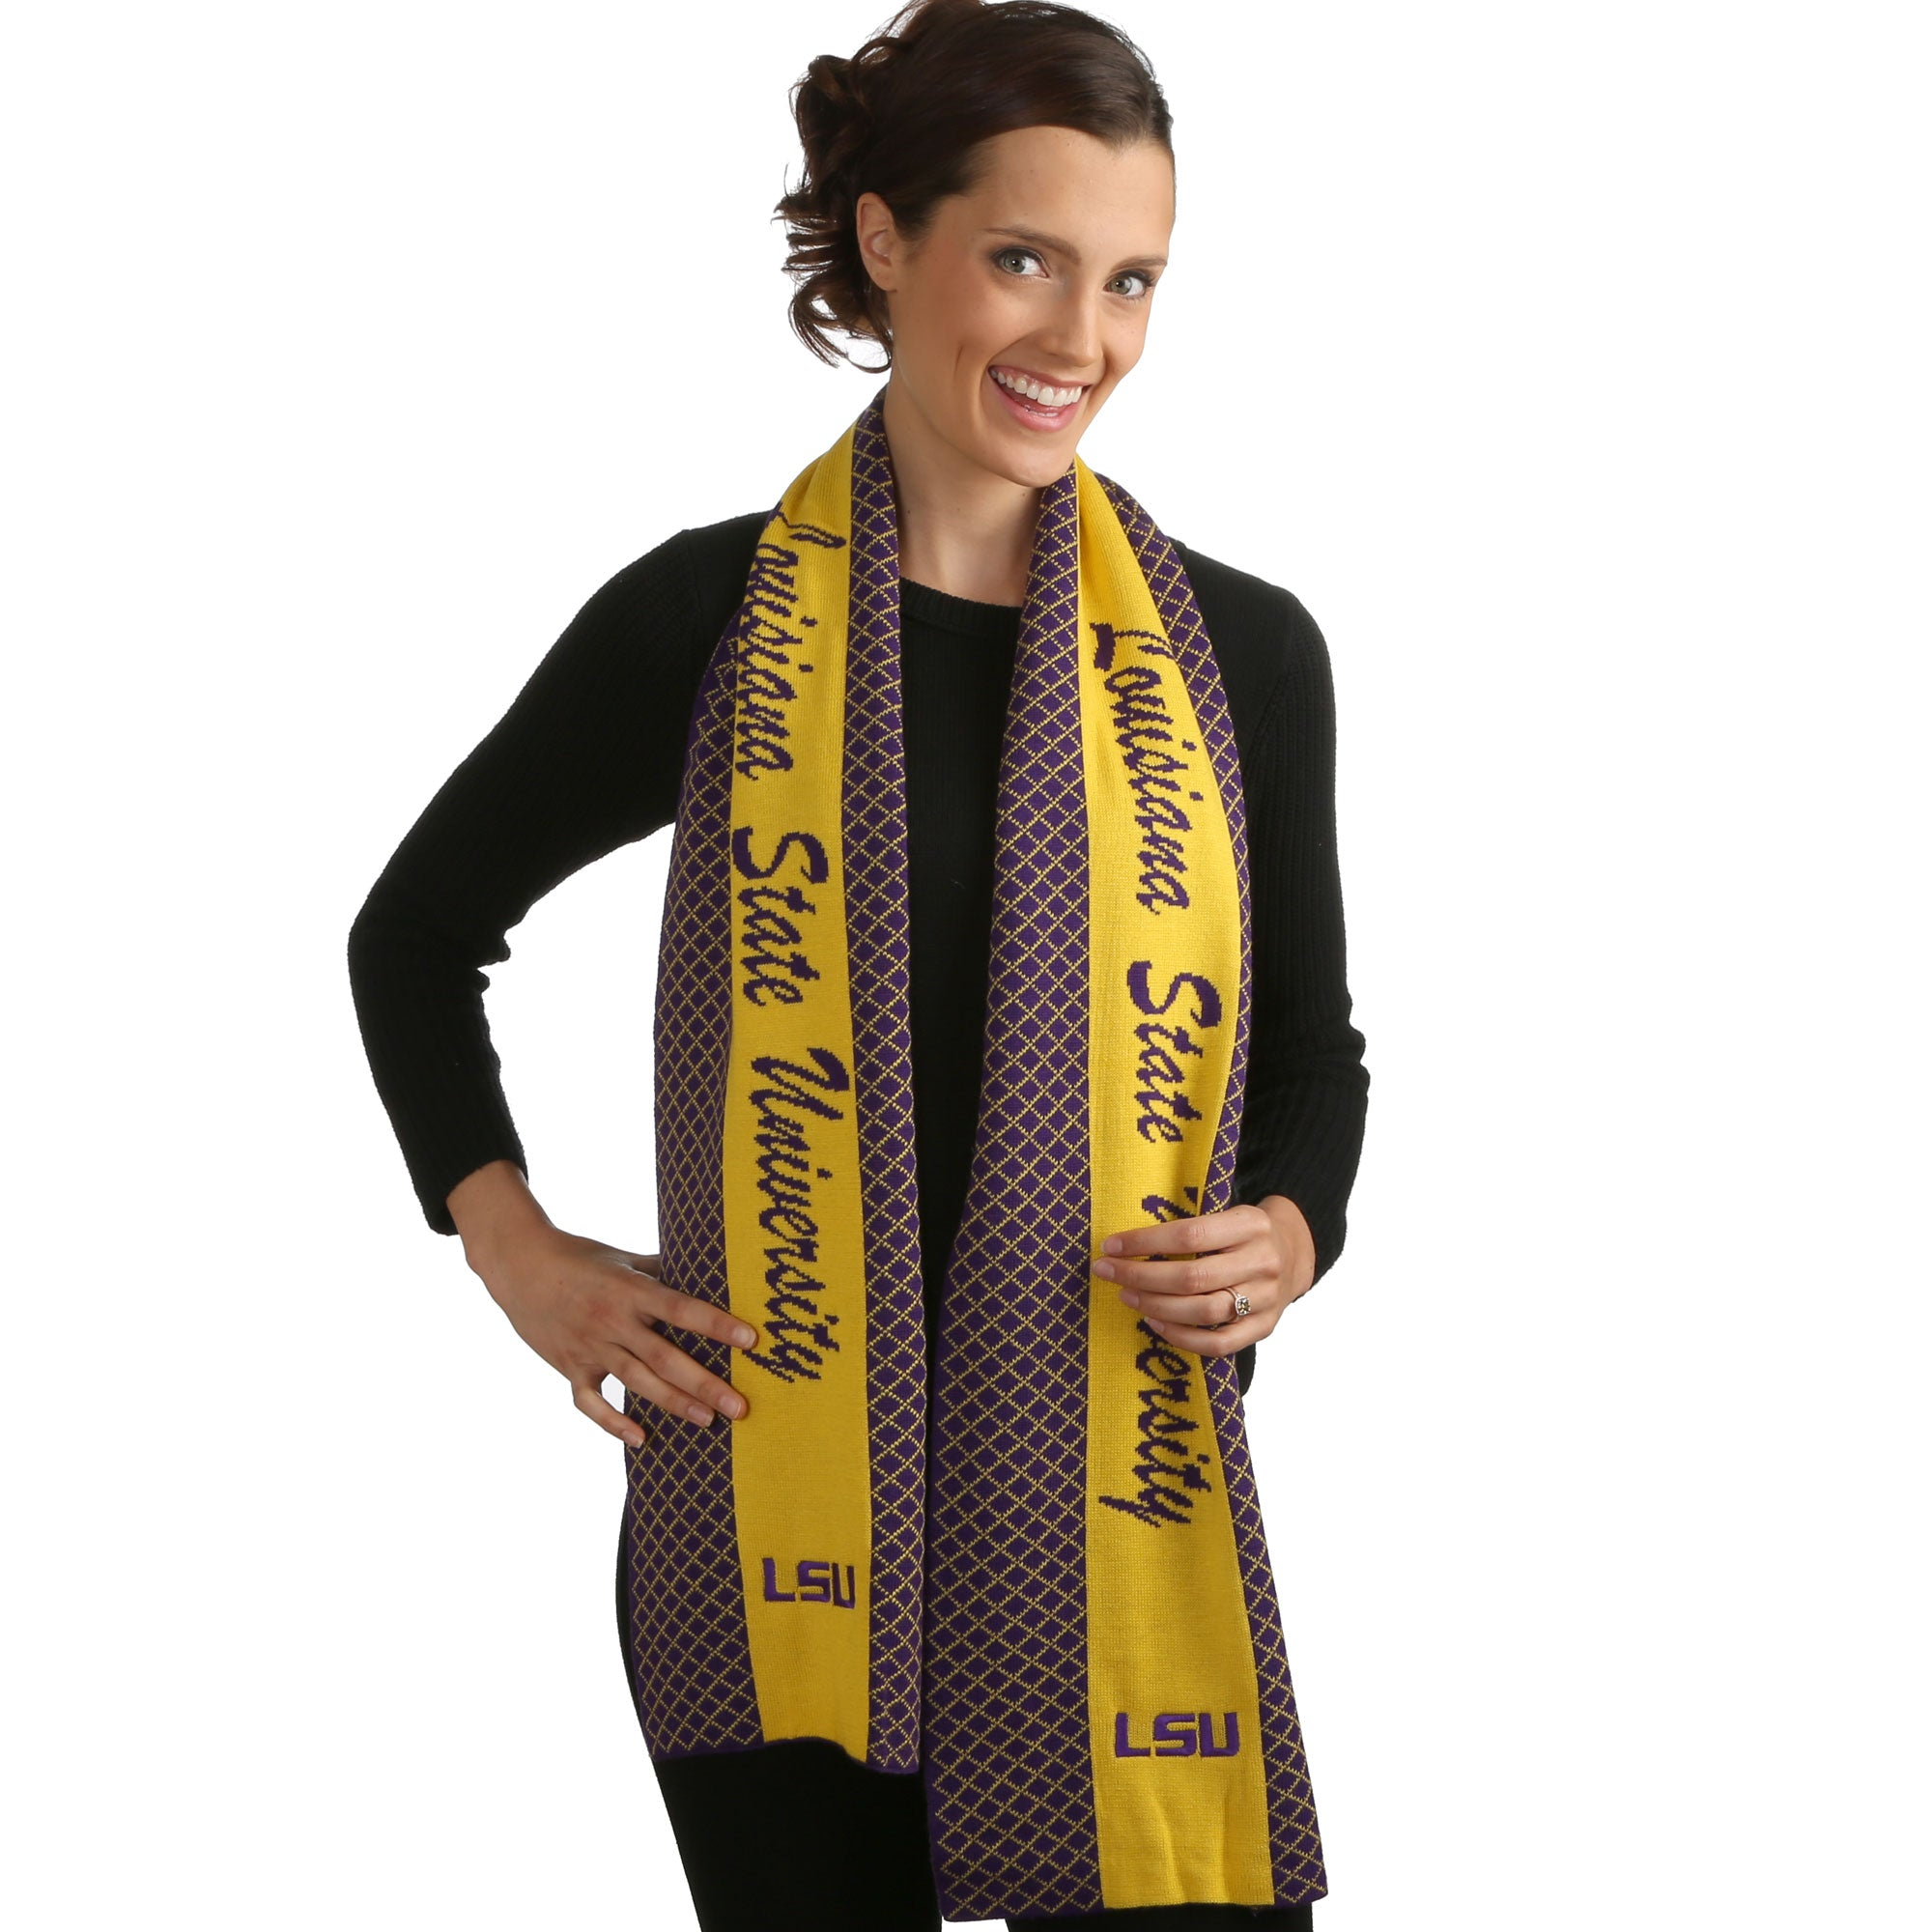 LSU TIGERS 2 TONE KNIT SCARF